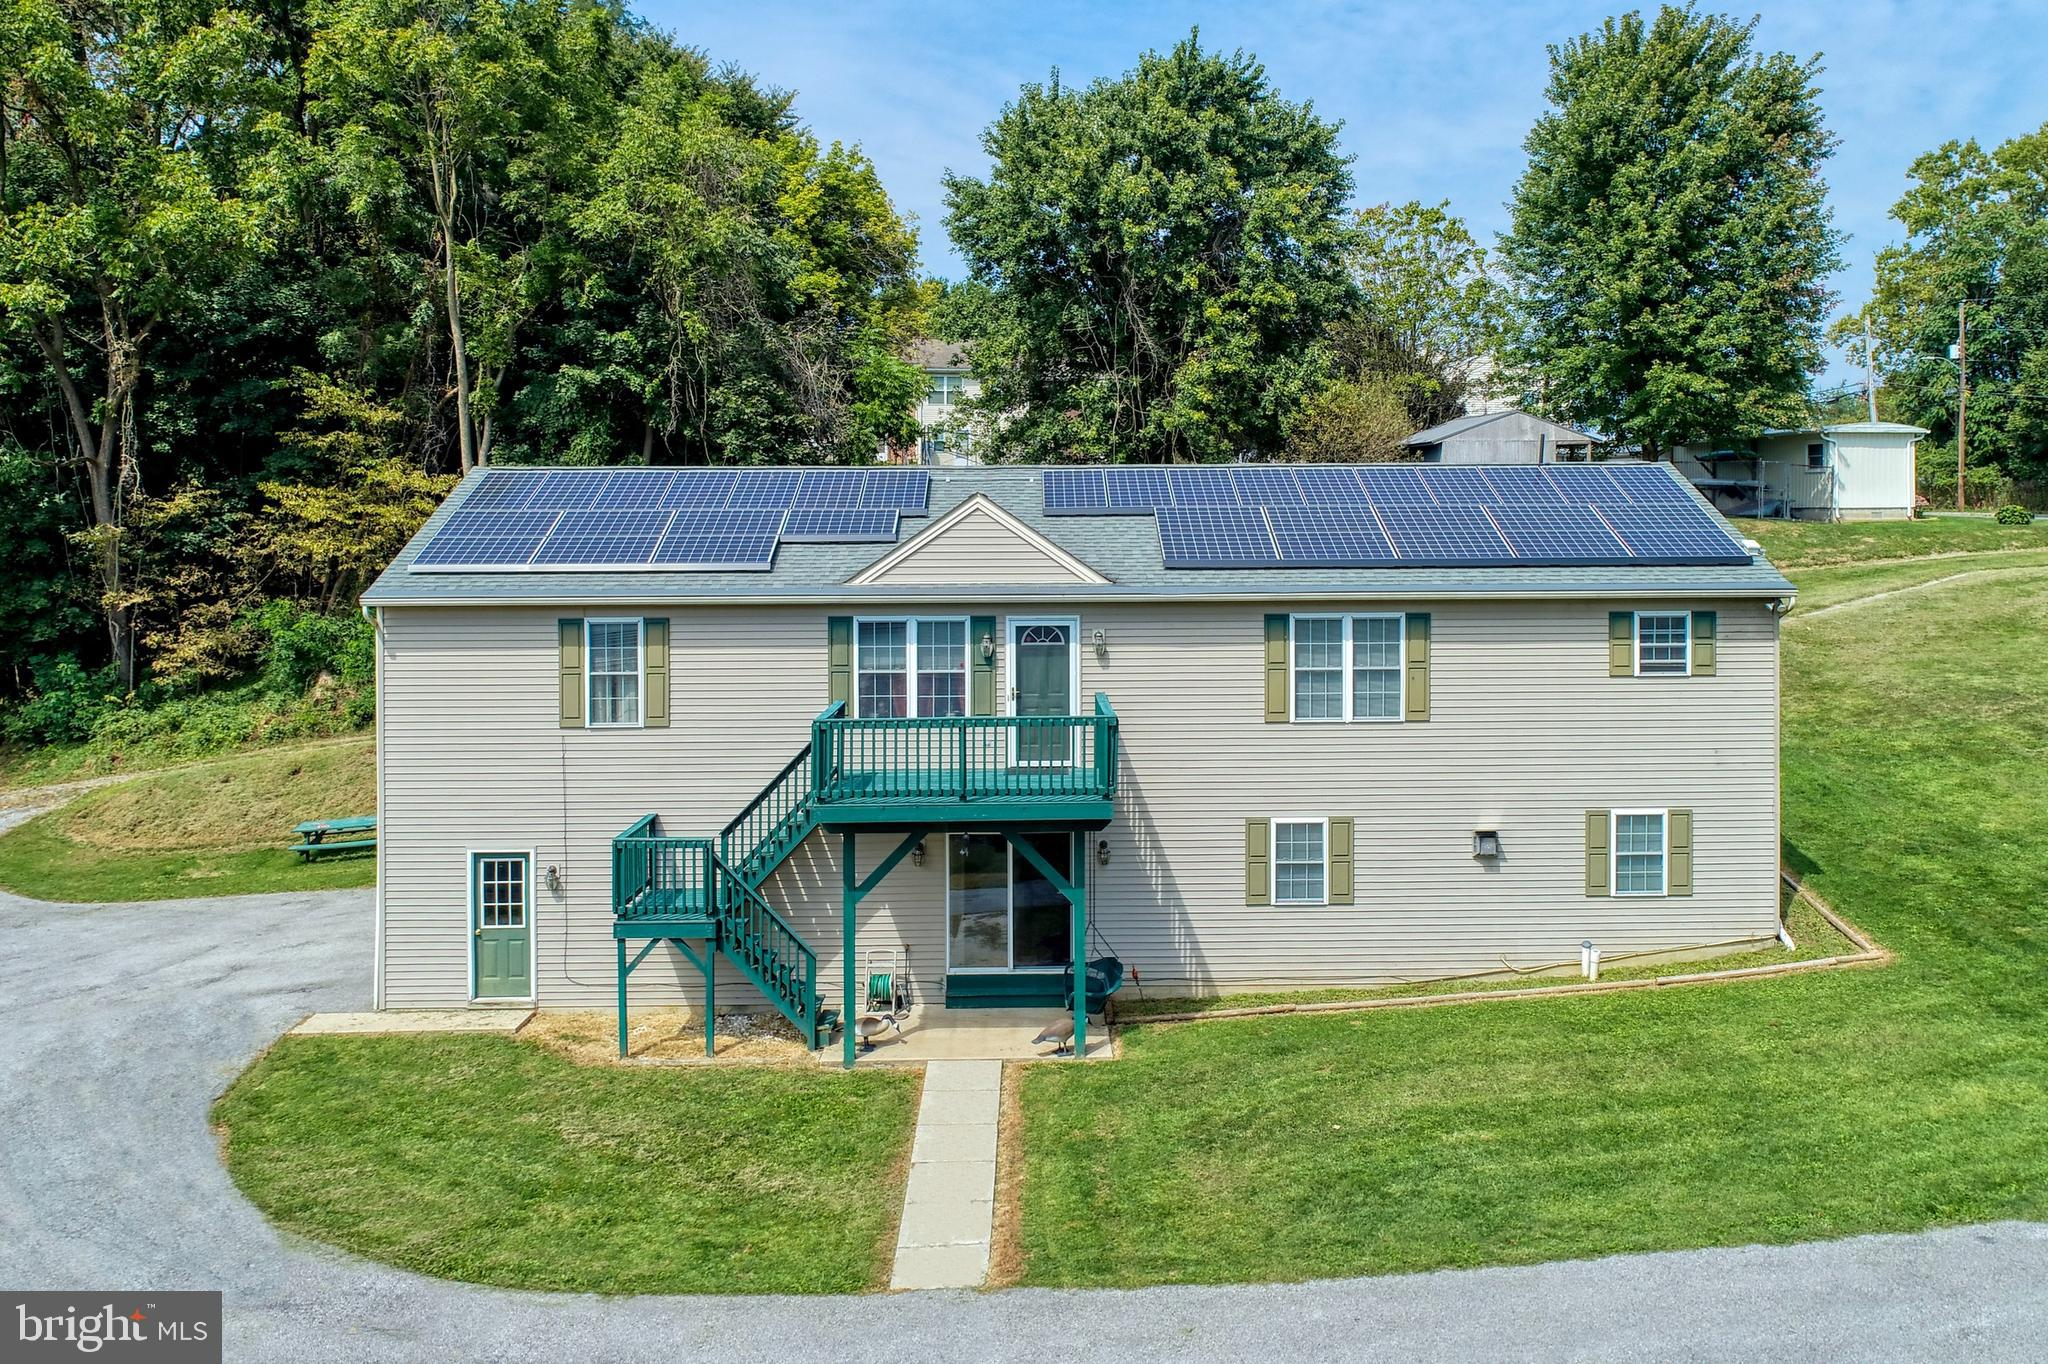 518 S 2ND STREET, WRIGHTSVILLE, PA 17368